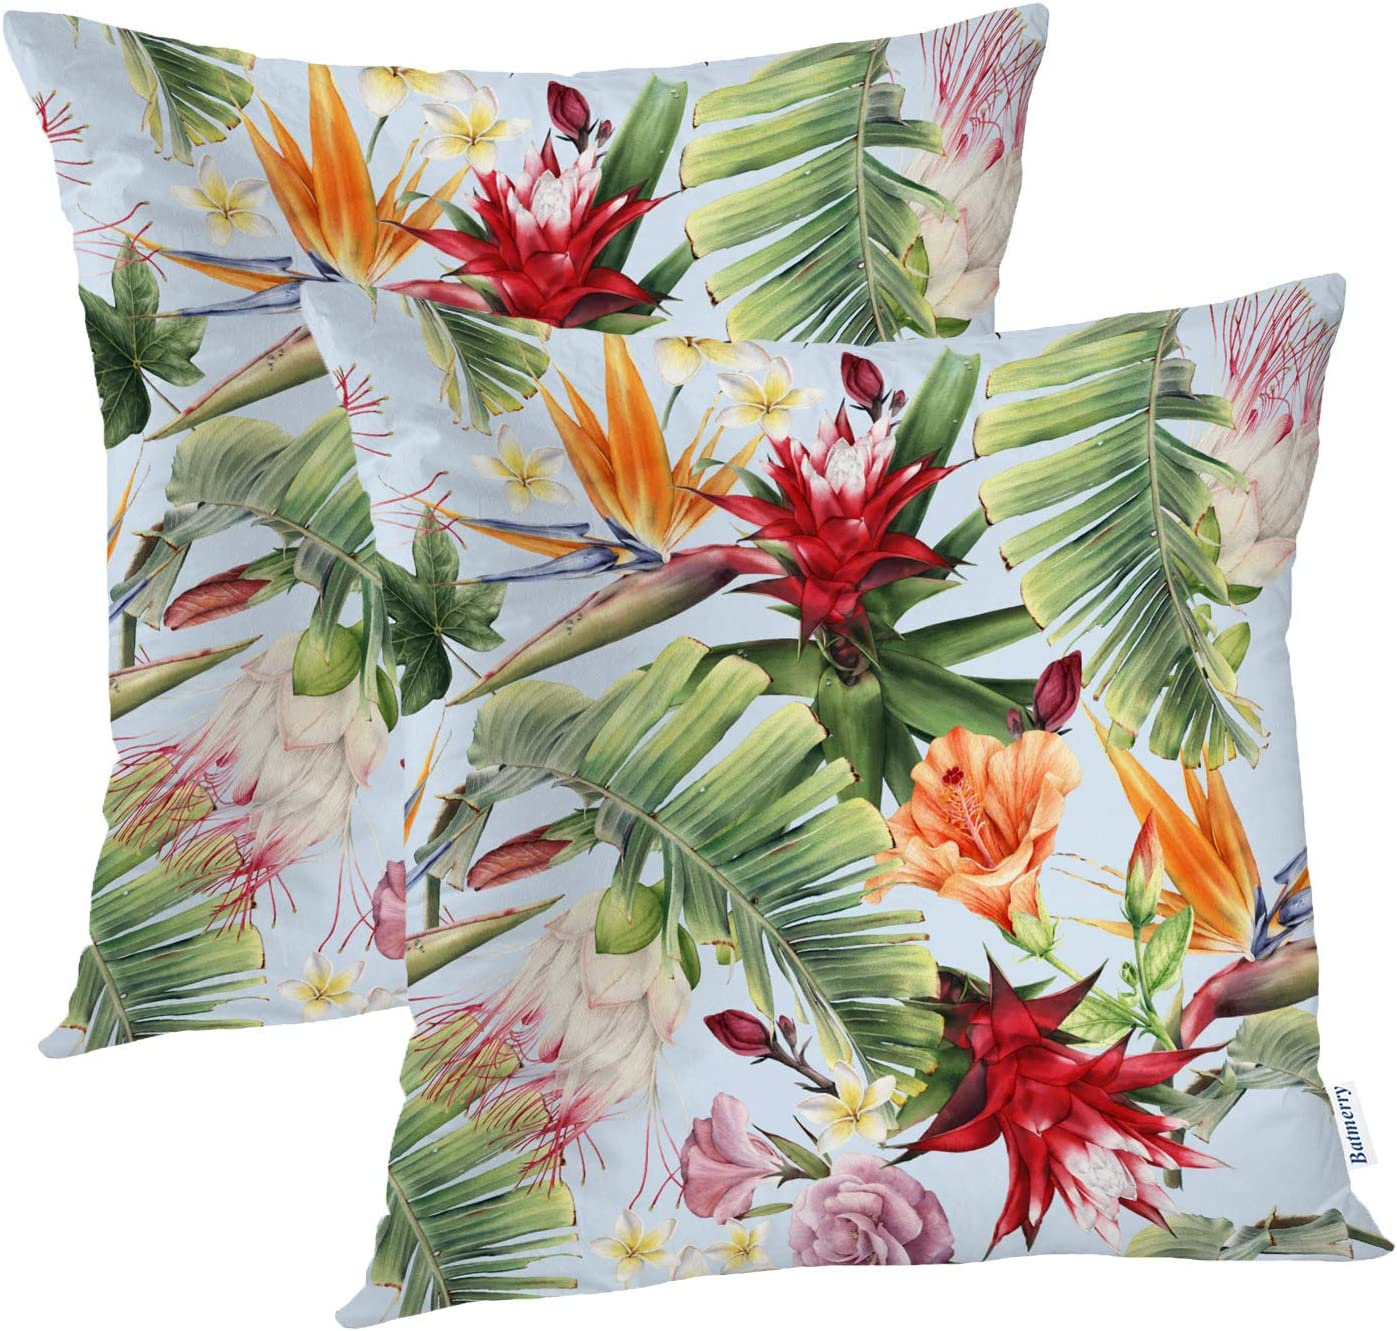 batmerry floral tropical decorative pillow covers 22 x 22 inch abstract tropical floral aloha double sided throw pillow covers sofa cushion cover